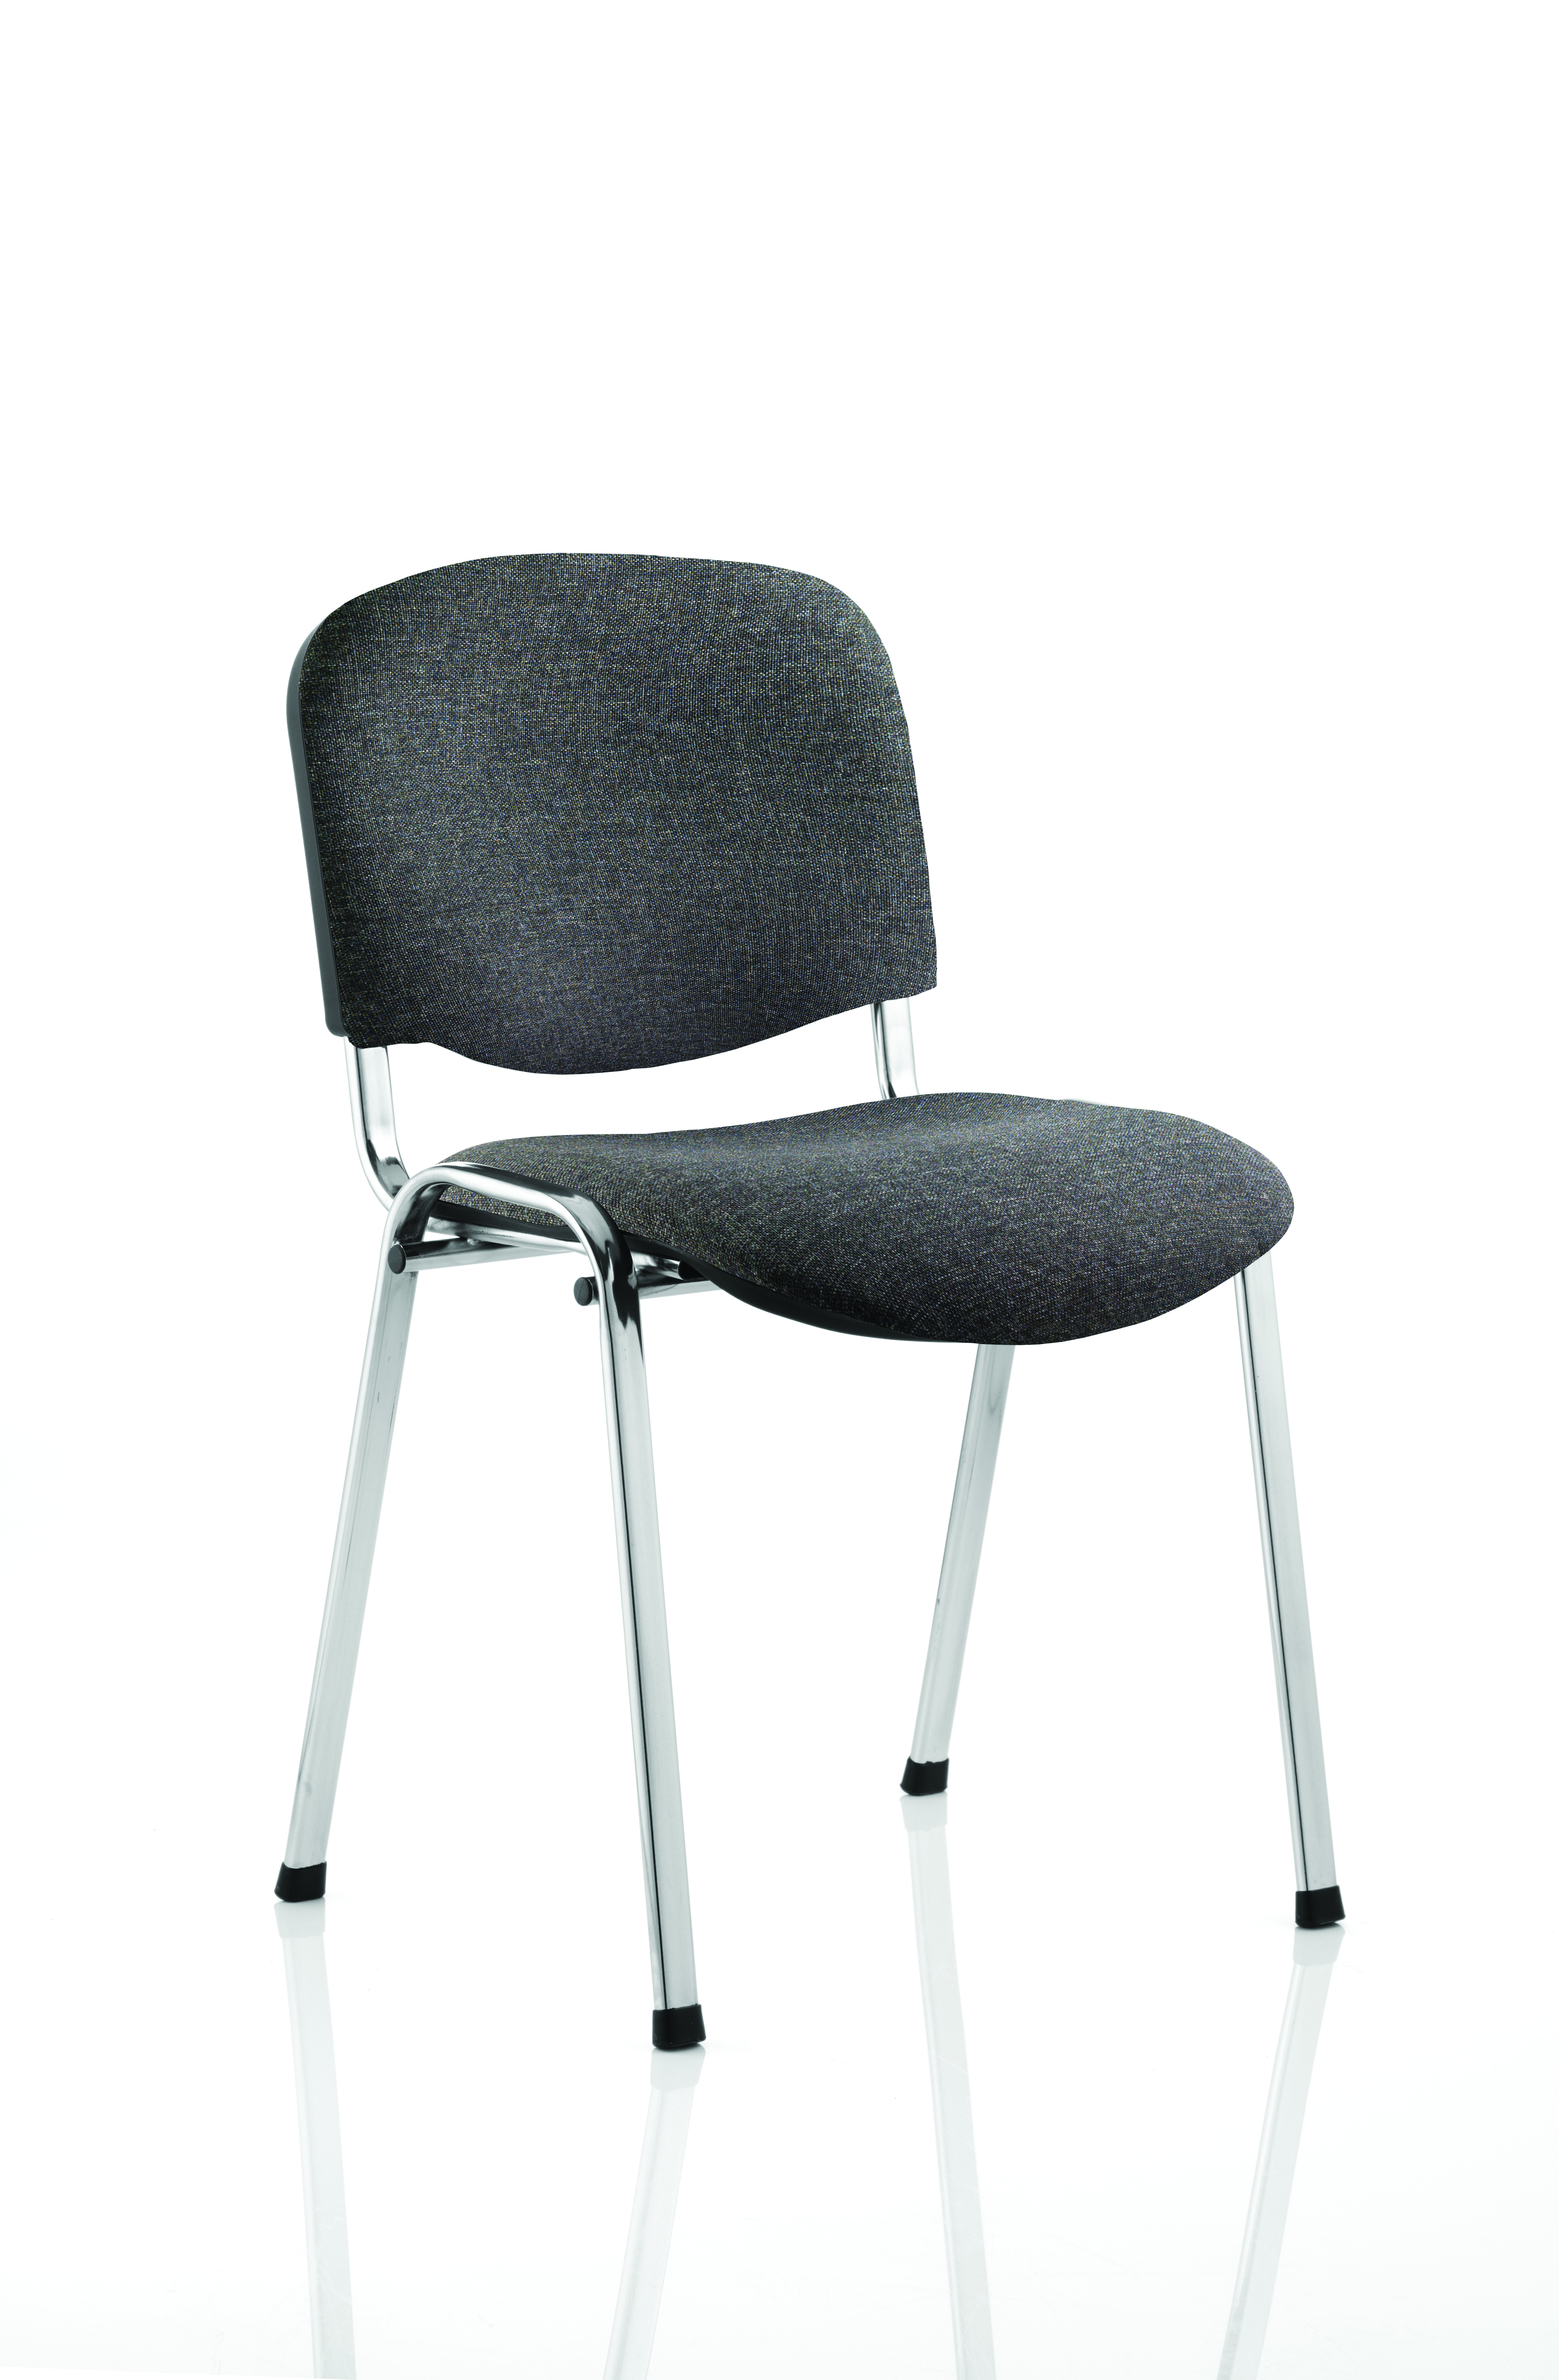 Stacking Chairs ISO Stacking Chair Charcoal Fabric Chrome Frame BR000069